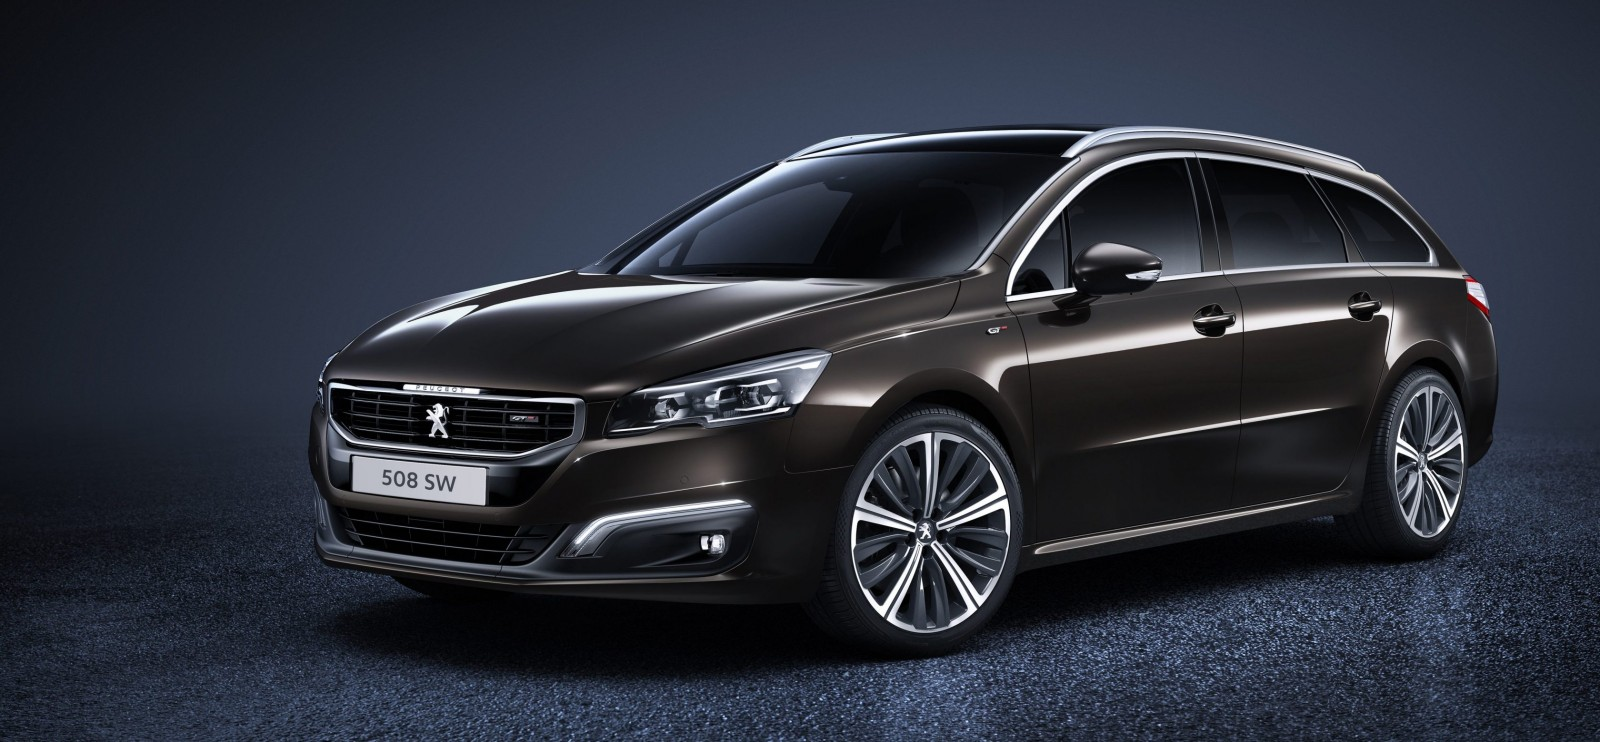 2015 Peugeot 508 Facelifted With New LED DRLs, Box-Design Beams and Tweaked Cabin Tech 19